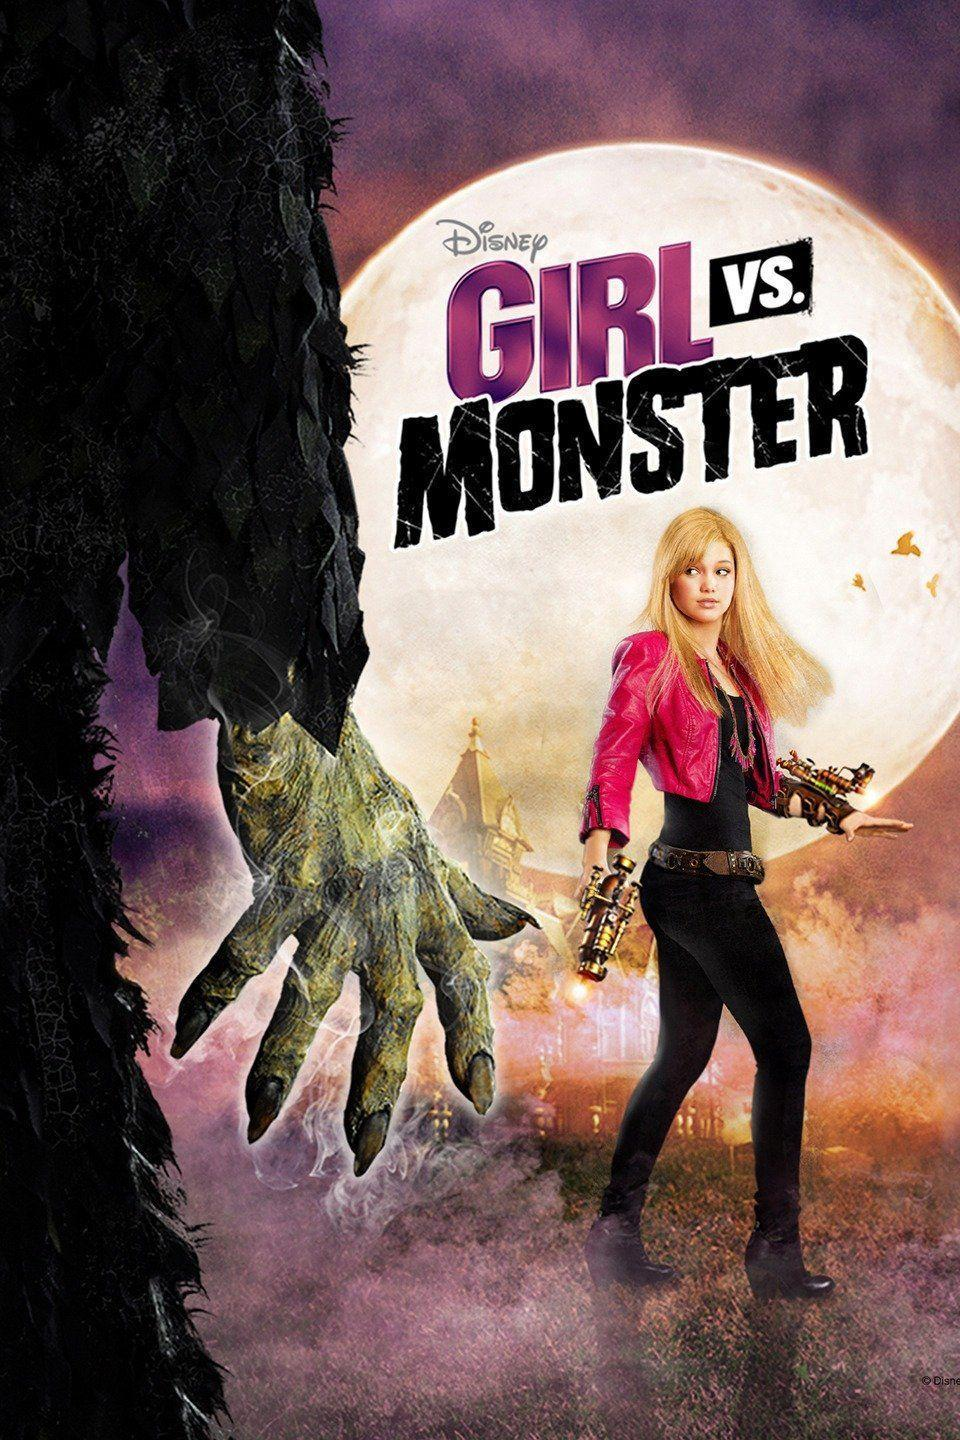 """<p>Skylar is a fearless teenage girl who, upon discovering that her parents are monster hunters, unleashes a wild monster by accident. Now with the help of her best friends, she must take on the monster to rescue her parents from captivity—oh, and meet her crush at the party of the year.</p><p><a class=""""link rapid-noclick-resp"""" href=""""https://go.redirectingat.com?id=74968X1596630&url=https%3A%2F%2Fwww.disneyplus.com%2Fmovies%2Fdisney-girl-vs-monster%2F72ukYPILTnHp&sref=https%3A%2F%2Fwww.countryliving.com%2Flife%2Fentertainment%2Fg32748070%2Fdisney-plus-halloween-movies%2F"""" rel=""""nofollow noopener"""" target=""""_blank"""" data-ylk=""""slk:WATCH NOW"""">WATCH NOW</a></p>"""